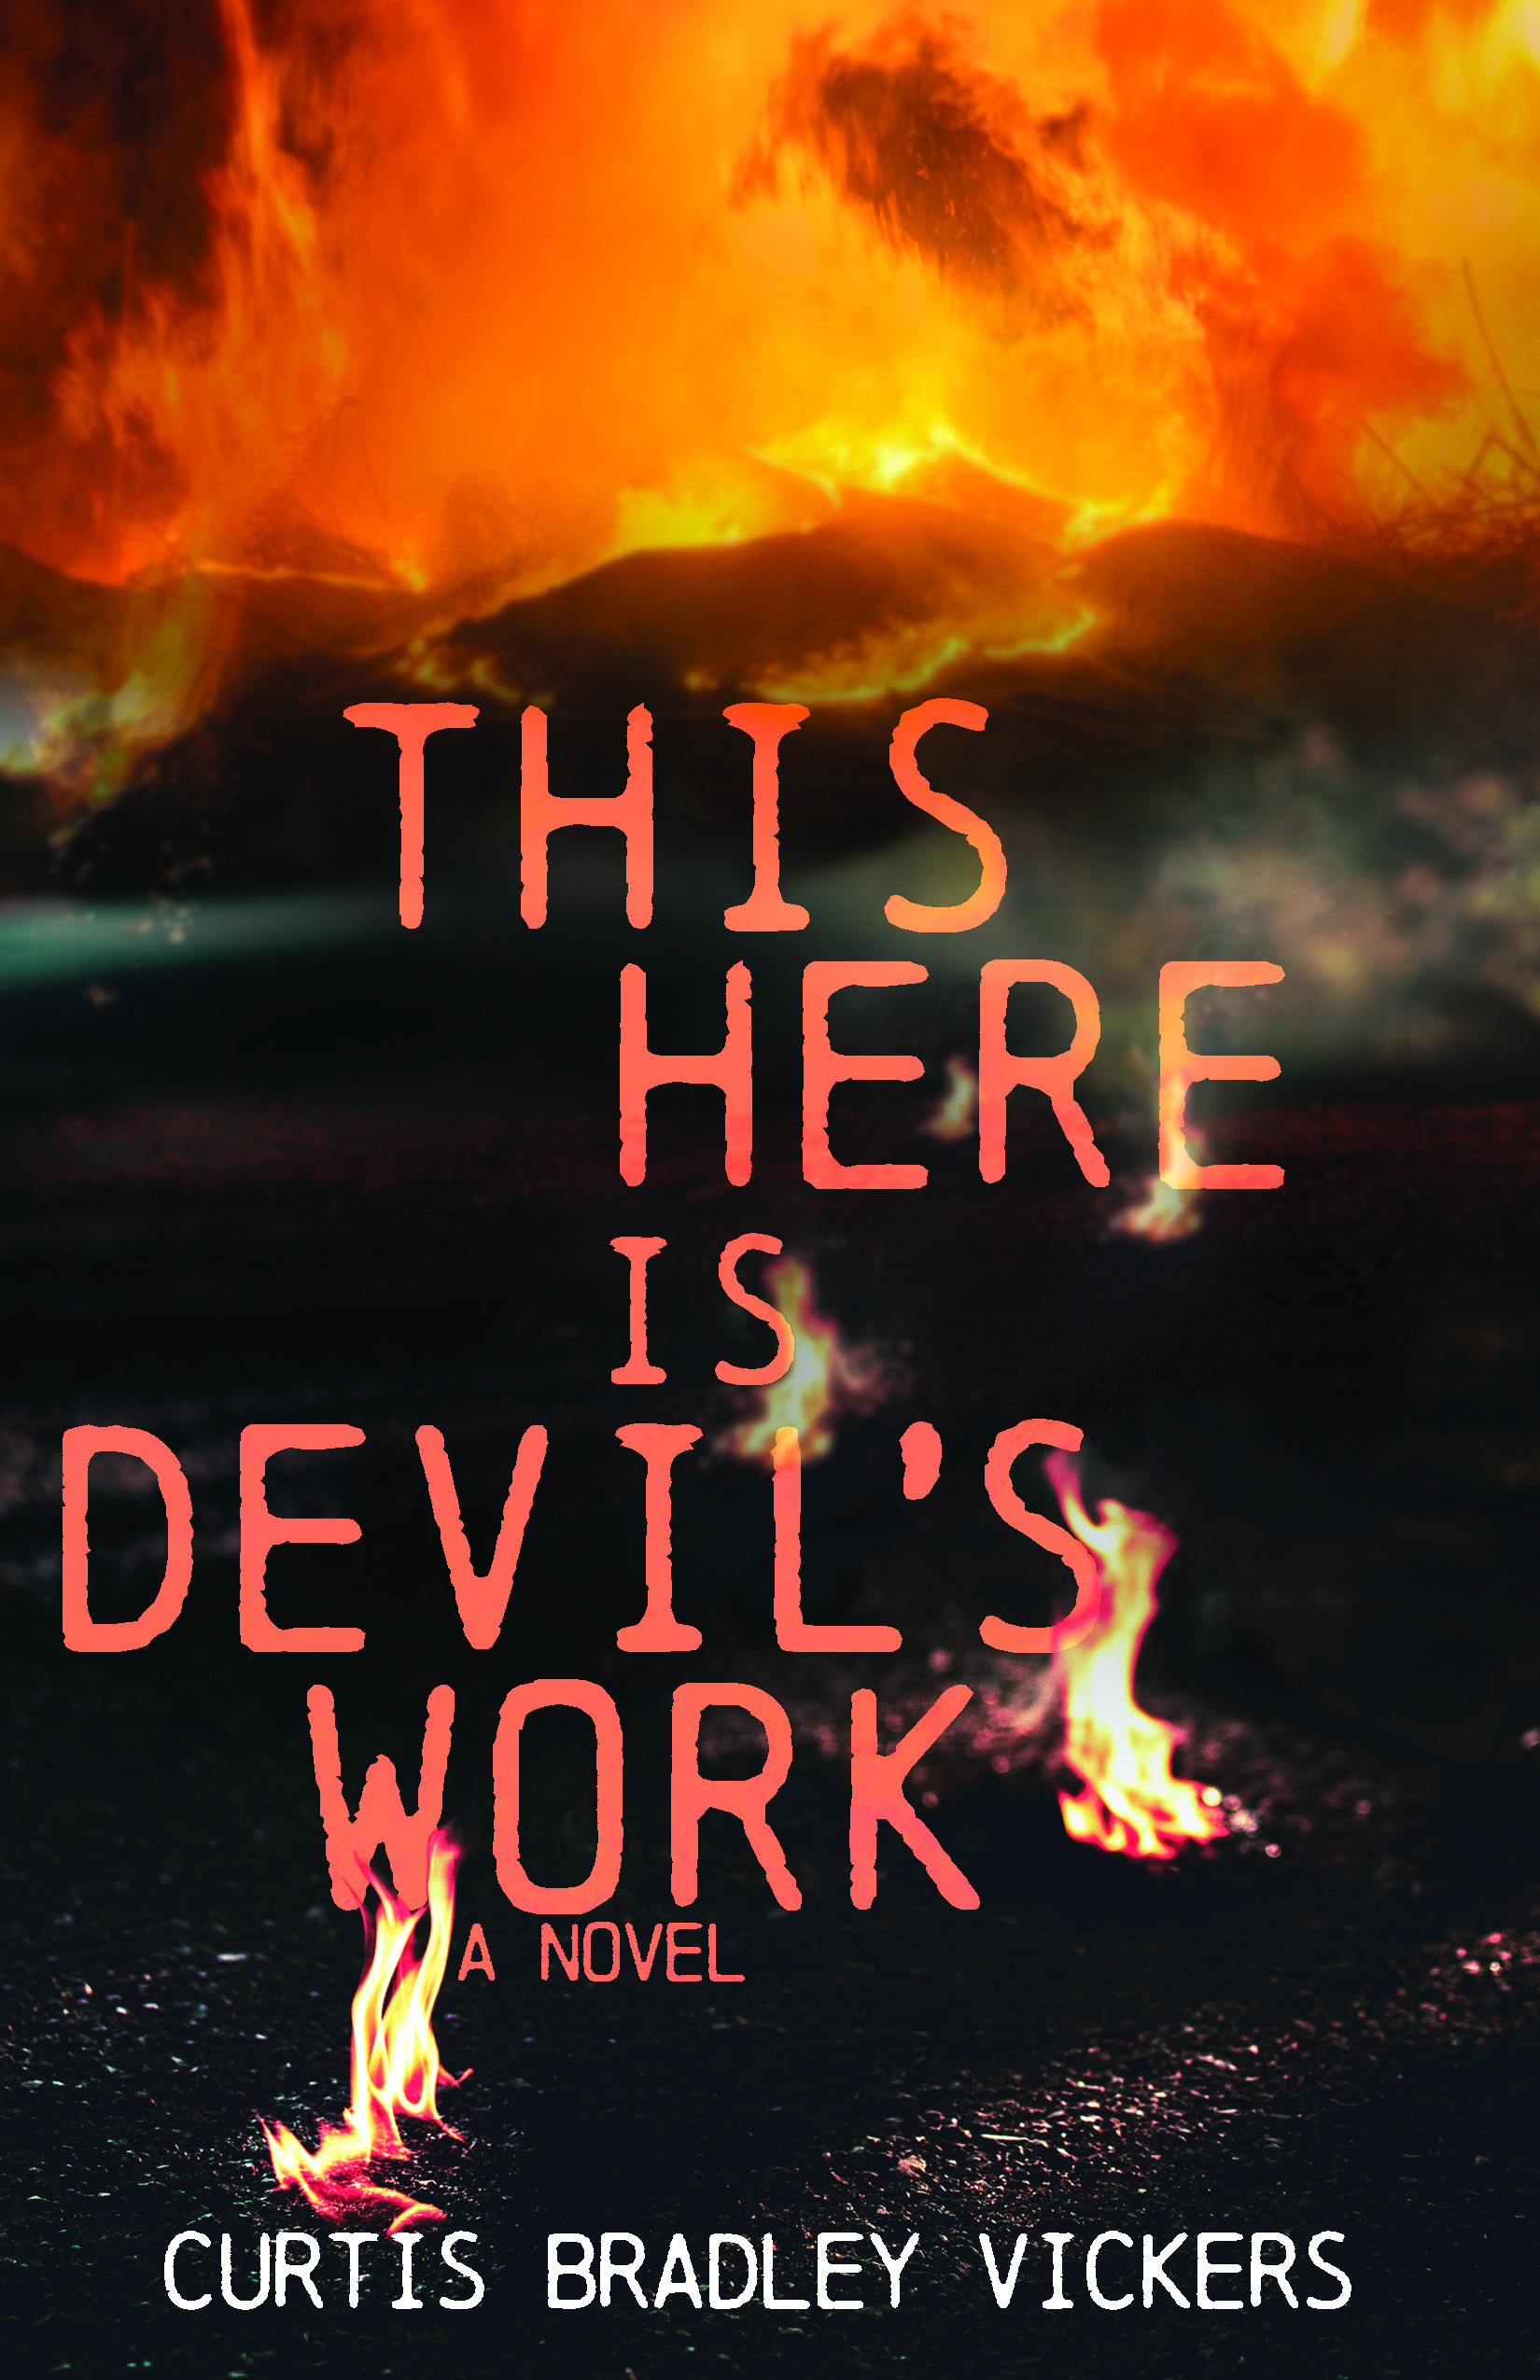 Cover image of This Here Is Devil's Work includes a fire in the background and blackened foreground